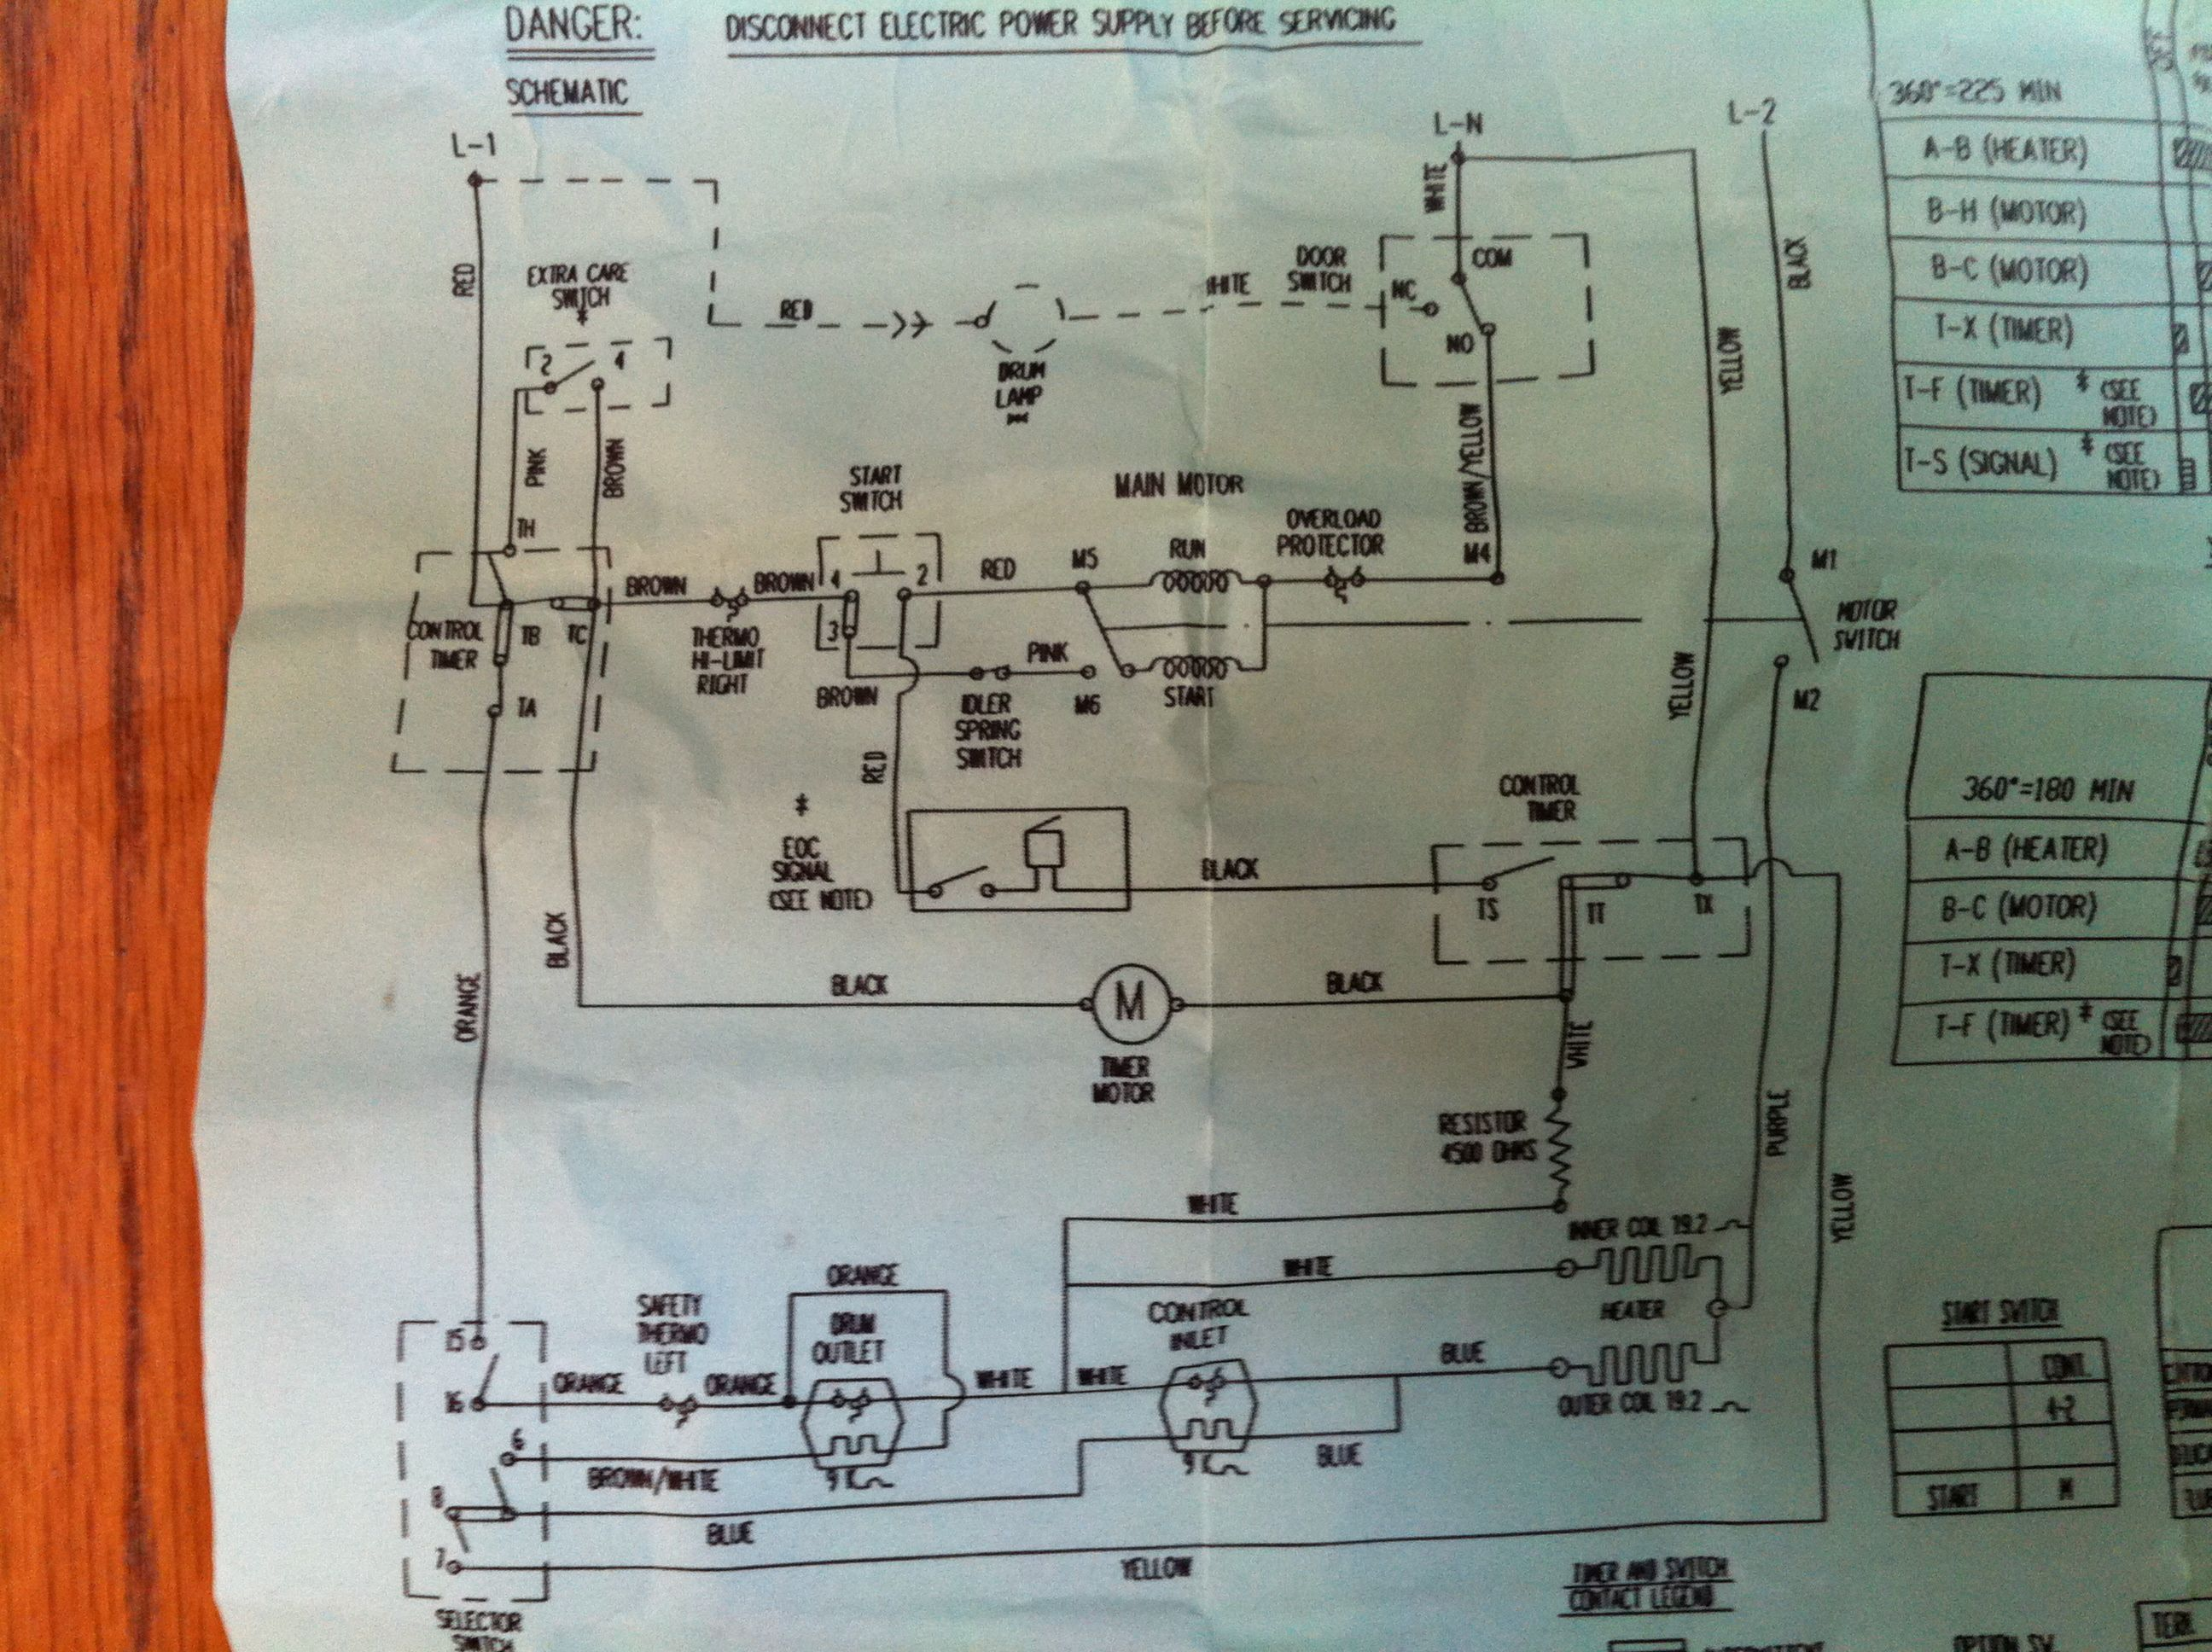 Control Panel Wiring Diagram from f01.justanswer.com